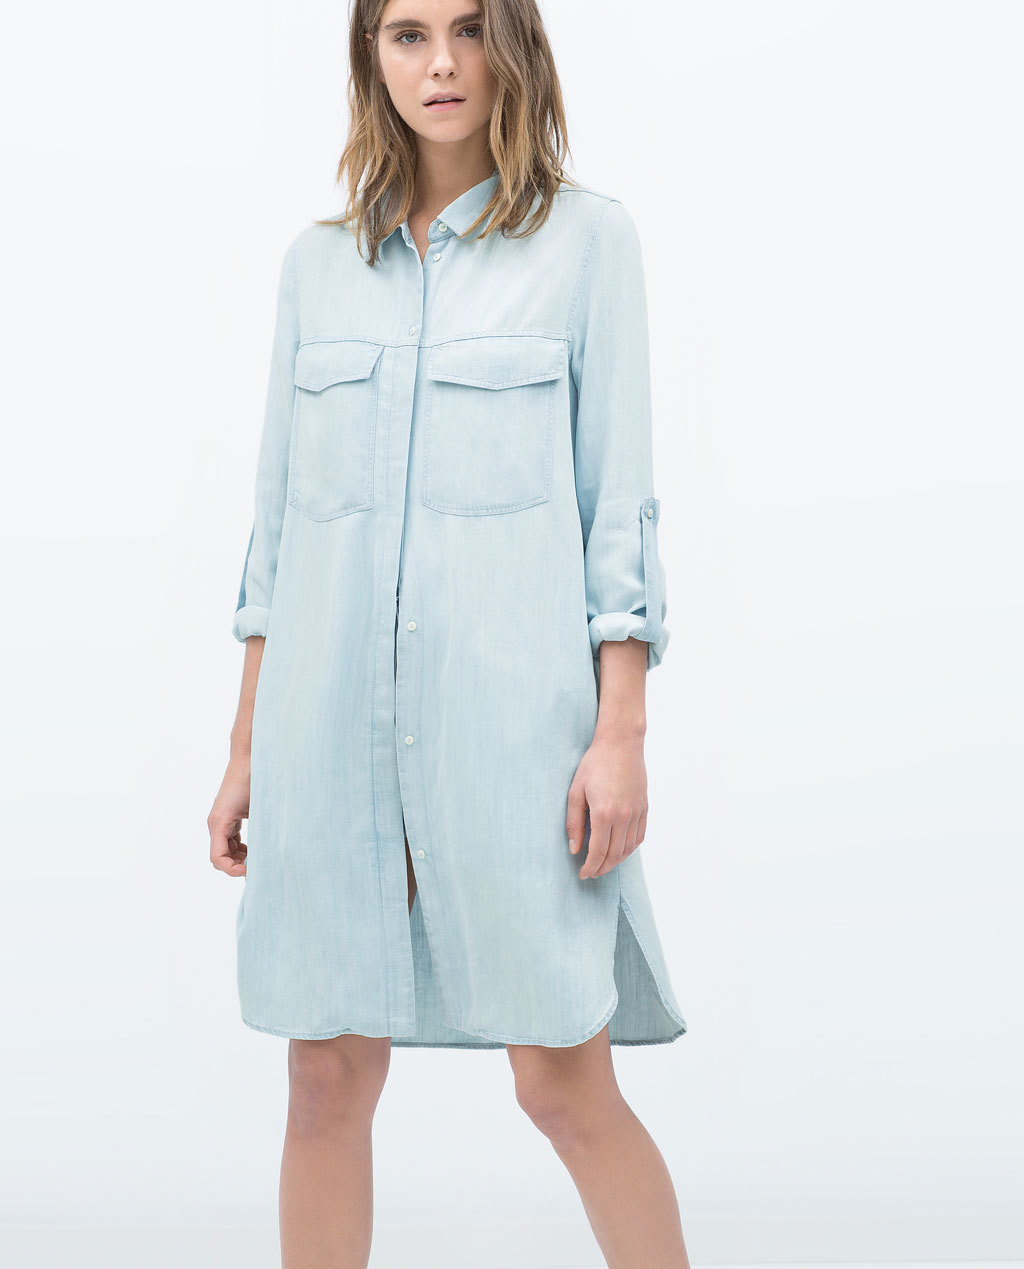 Long Denim Shirt Dress - style: shirt; neckline: shirt collar/peter pan/zip with opening; fit: loose; pattern: plain; predominant colour: pale blue; occasions: casual; length: just above the knee; fibres: cotton - 100%; sleeve length: 3/4 length; sleeve style: standard; texture group: denim; bust detail: bulky details at bust; pattern type: fabric; trends: alternative denim; season: s/s 2015; wardrobe: basic